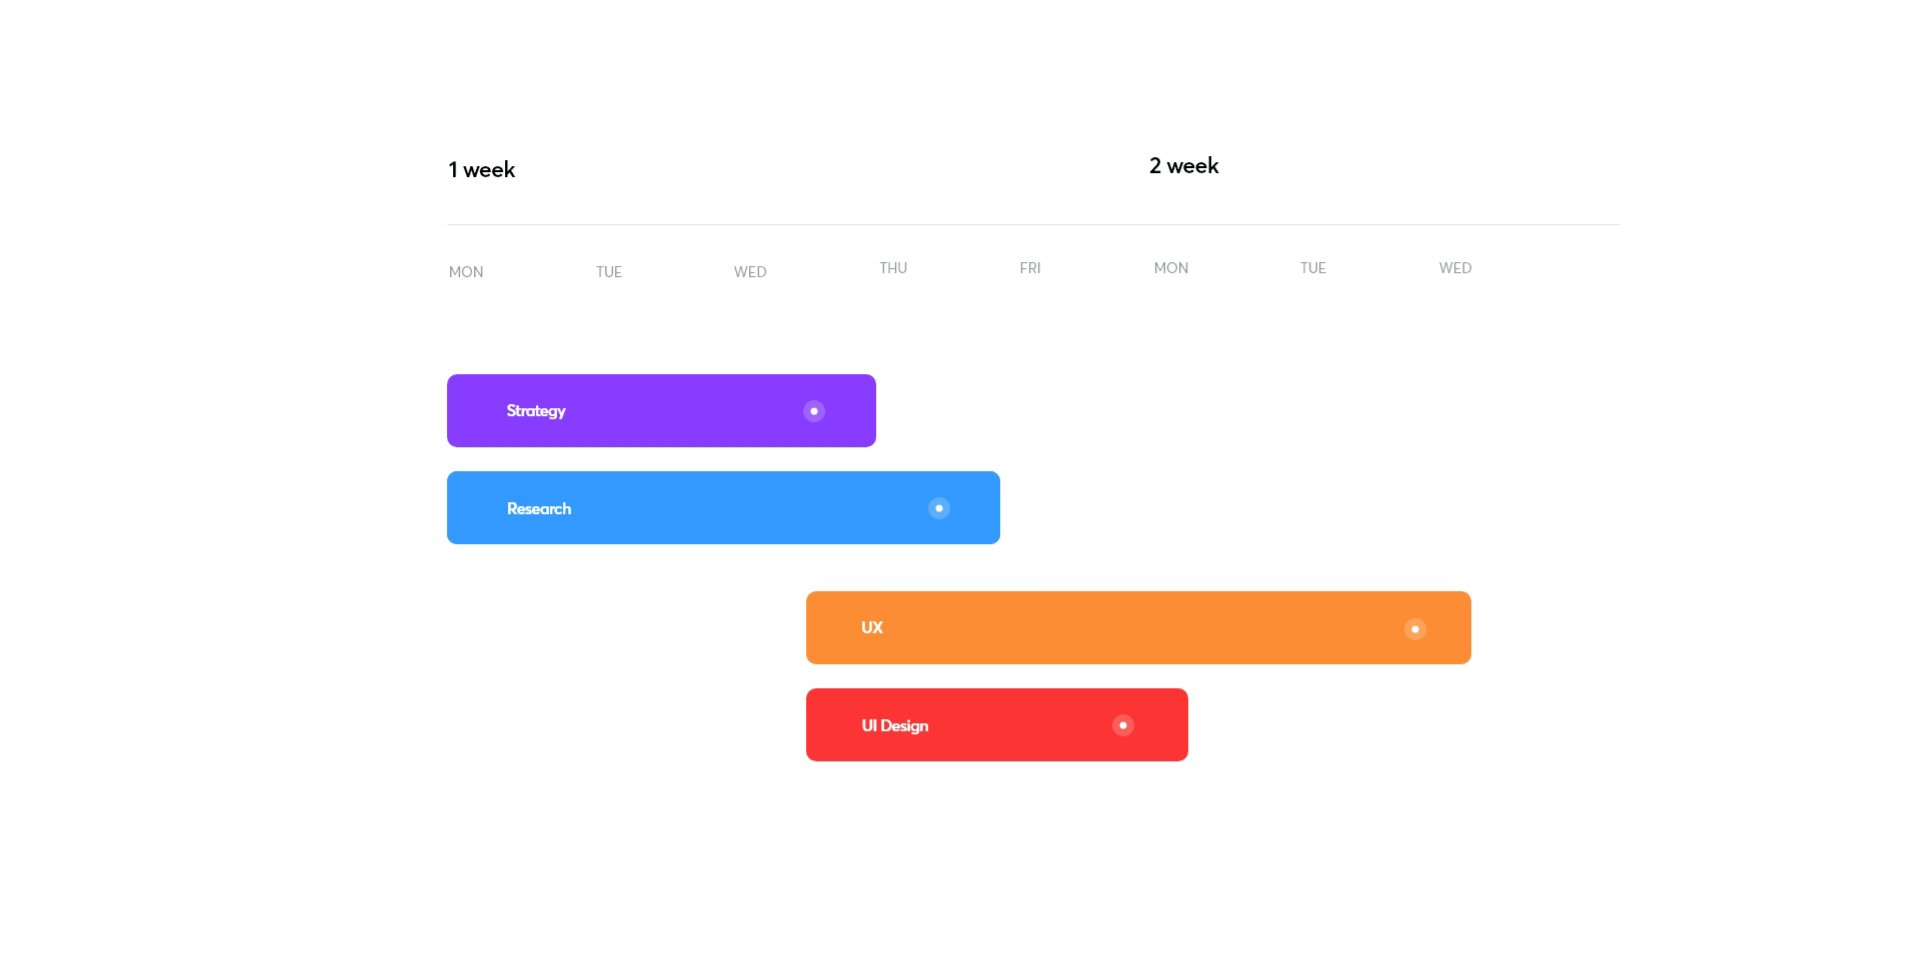 Our concept project's timeline